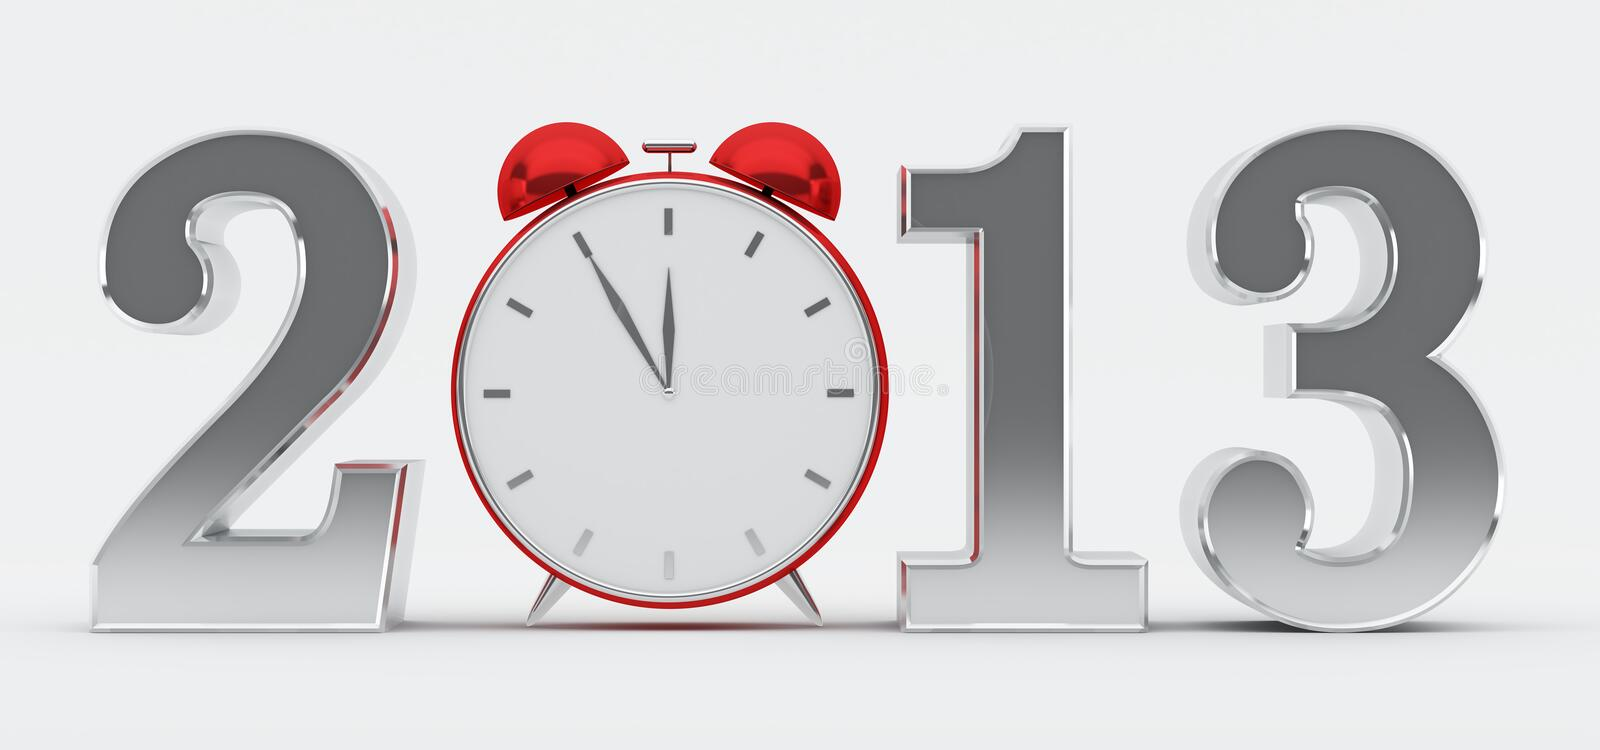 Download 2013 Concept With Red Clock Stock Illustration - Illustration of digit, beginning: 27648588